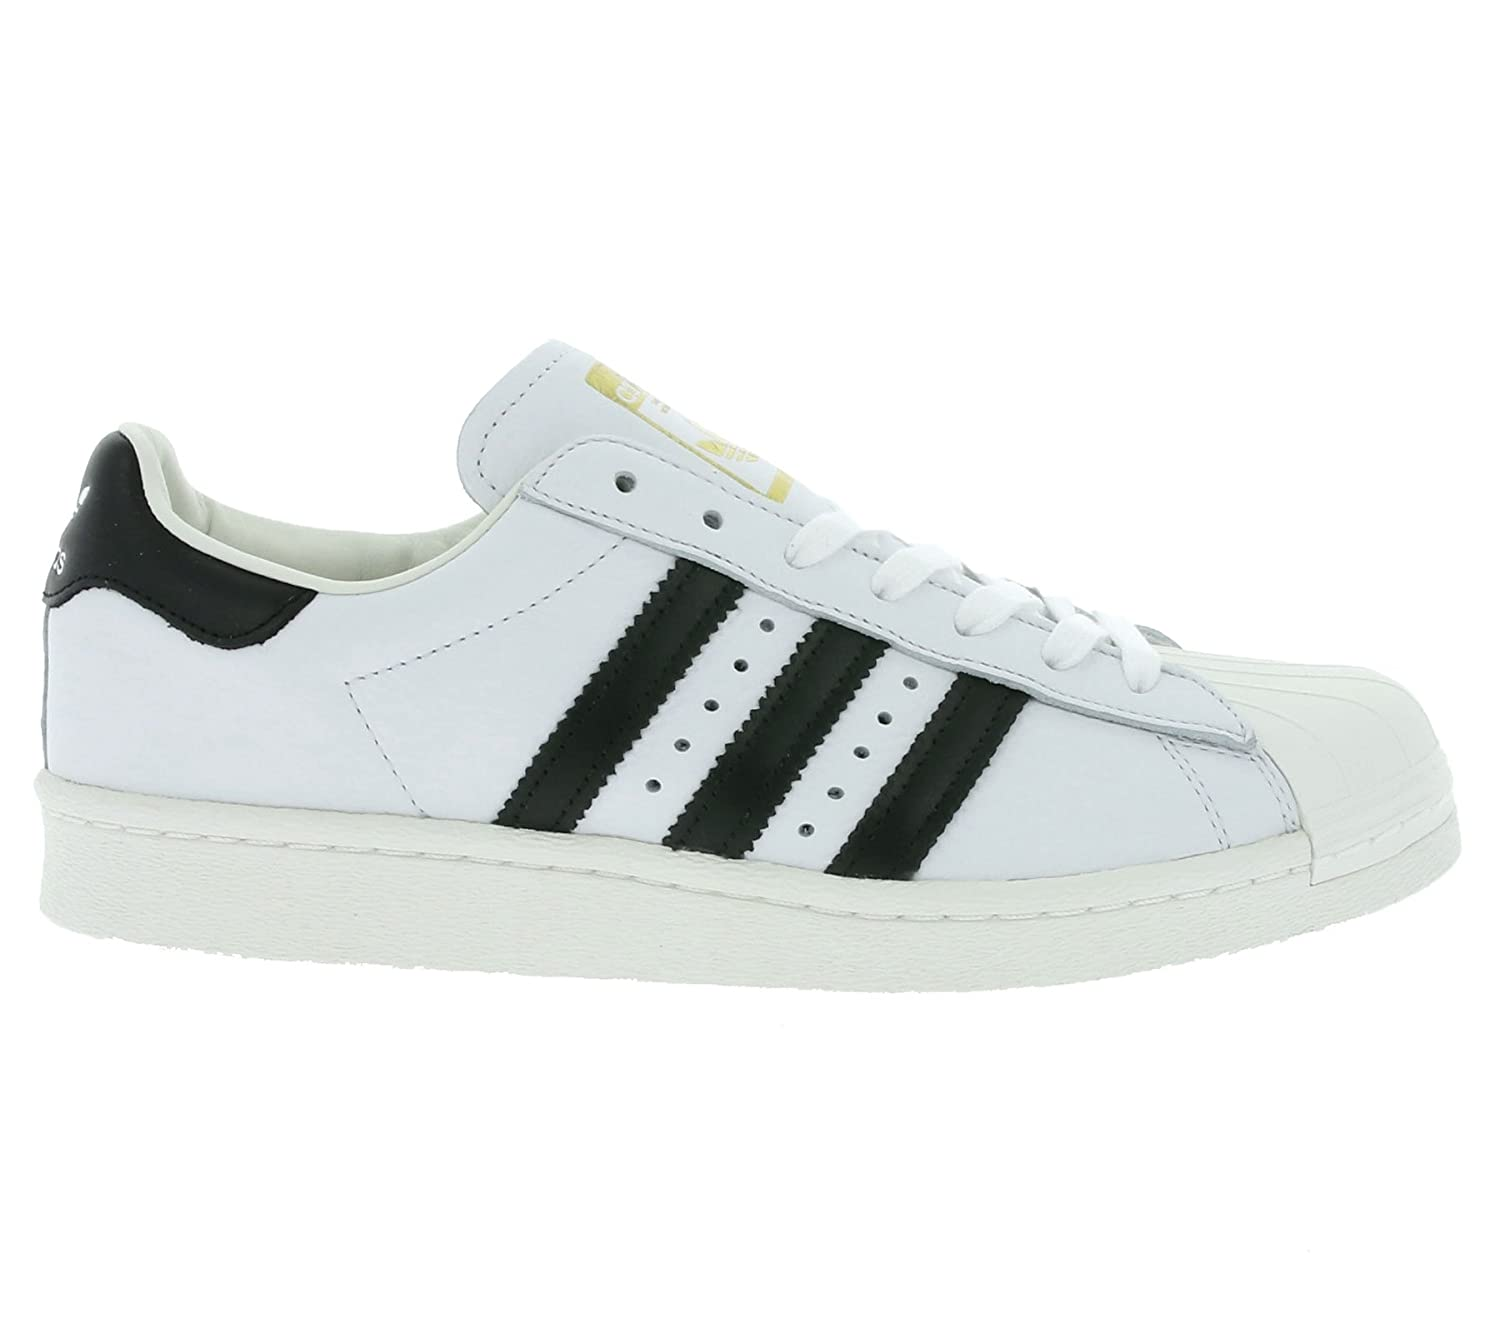 promo code 64413 44d46 adidas Mens Originals Superstar Boost Trainers in White Black Gold  Amazon.co.uk   Shoes   Bags